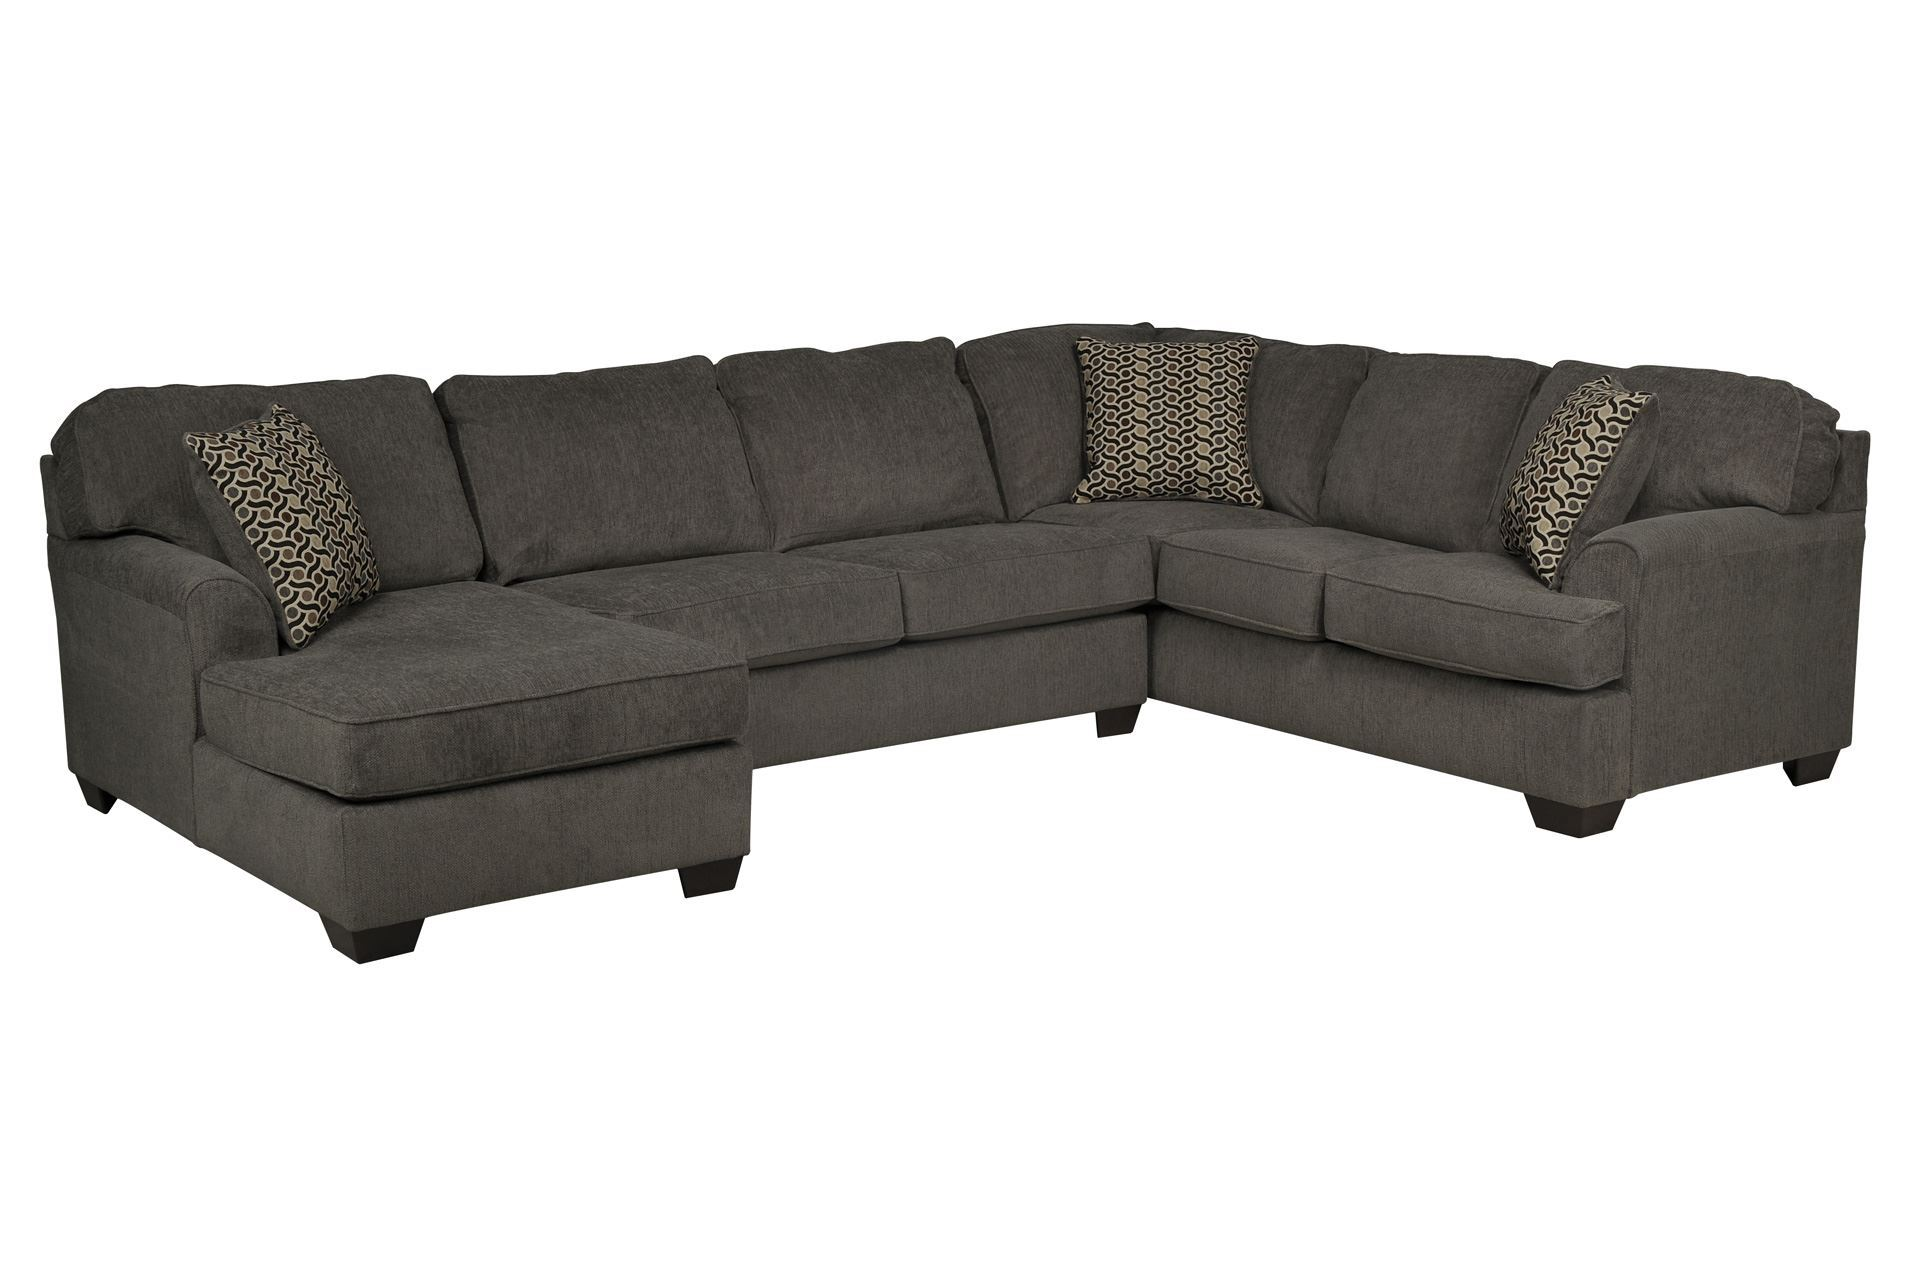 Loric smoke 3 piece sectional w laf chaise living spaces for Living spaces sectionals